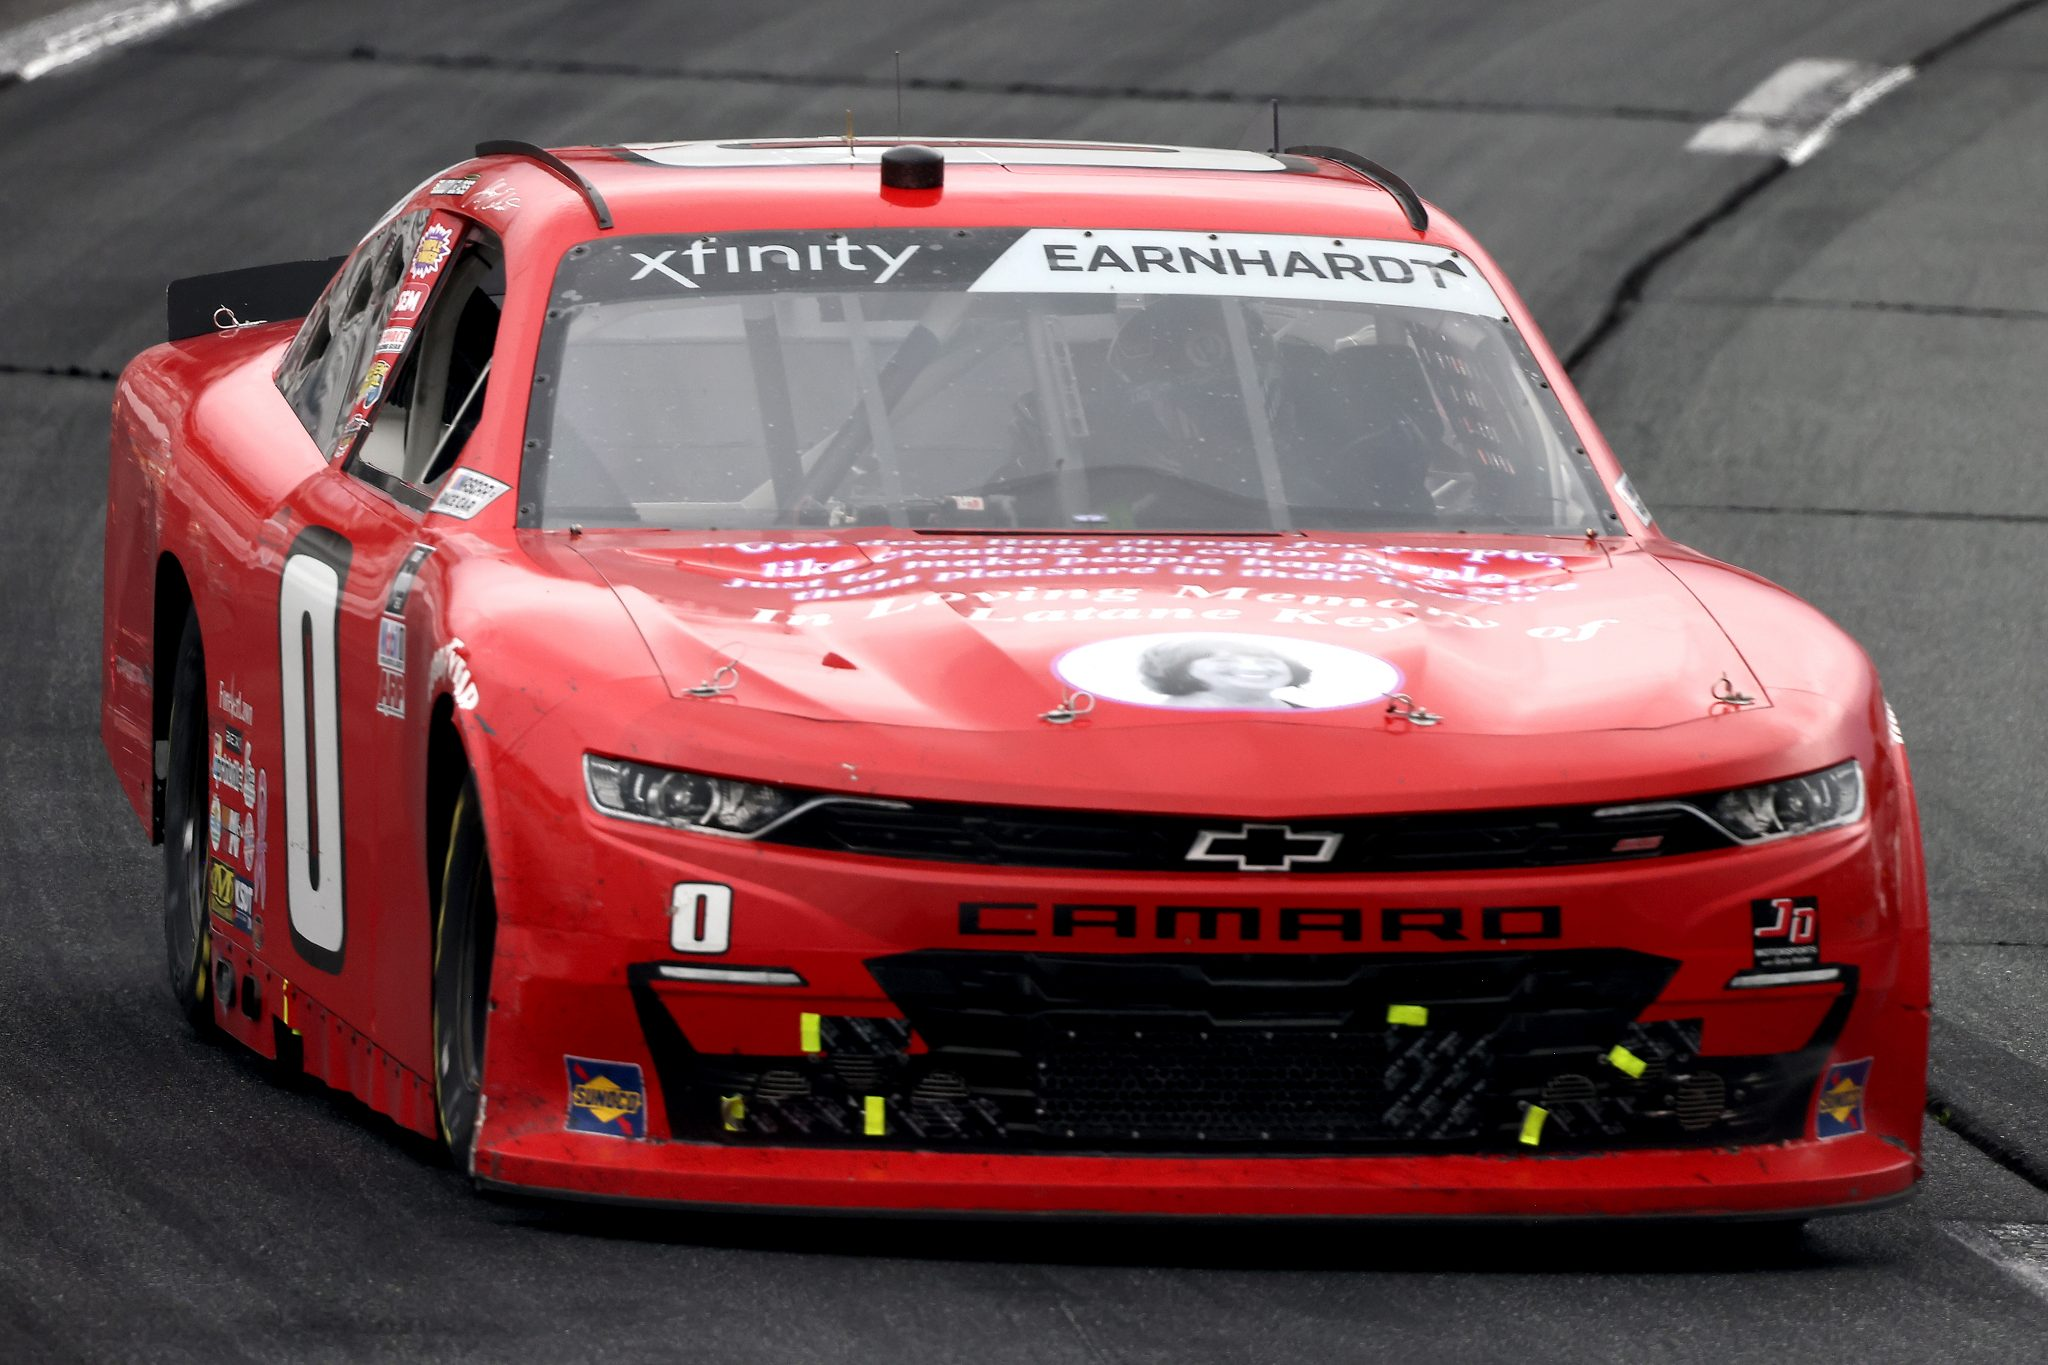 LOUDON, NEW HAMPSHIRE - JULY 17: Jeffrey Earnhardt, driver of the #0 In Memory of Latane Key Chevrolet, drives during the NASCAR Xfinity Series Ambetter Get Vaccinated 200 at New Hampshire Motor Speedway on July 17, 2021 in Loudon, New Hampshire. (Photo by James Gilbert/Getty Images) | Getty Images